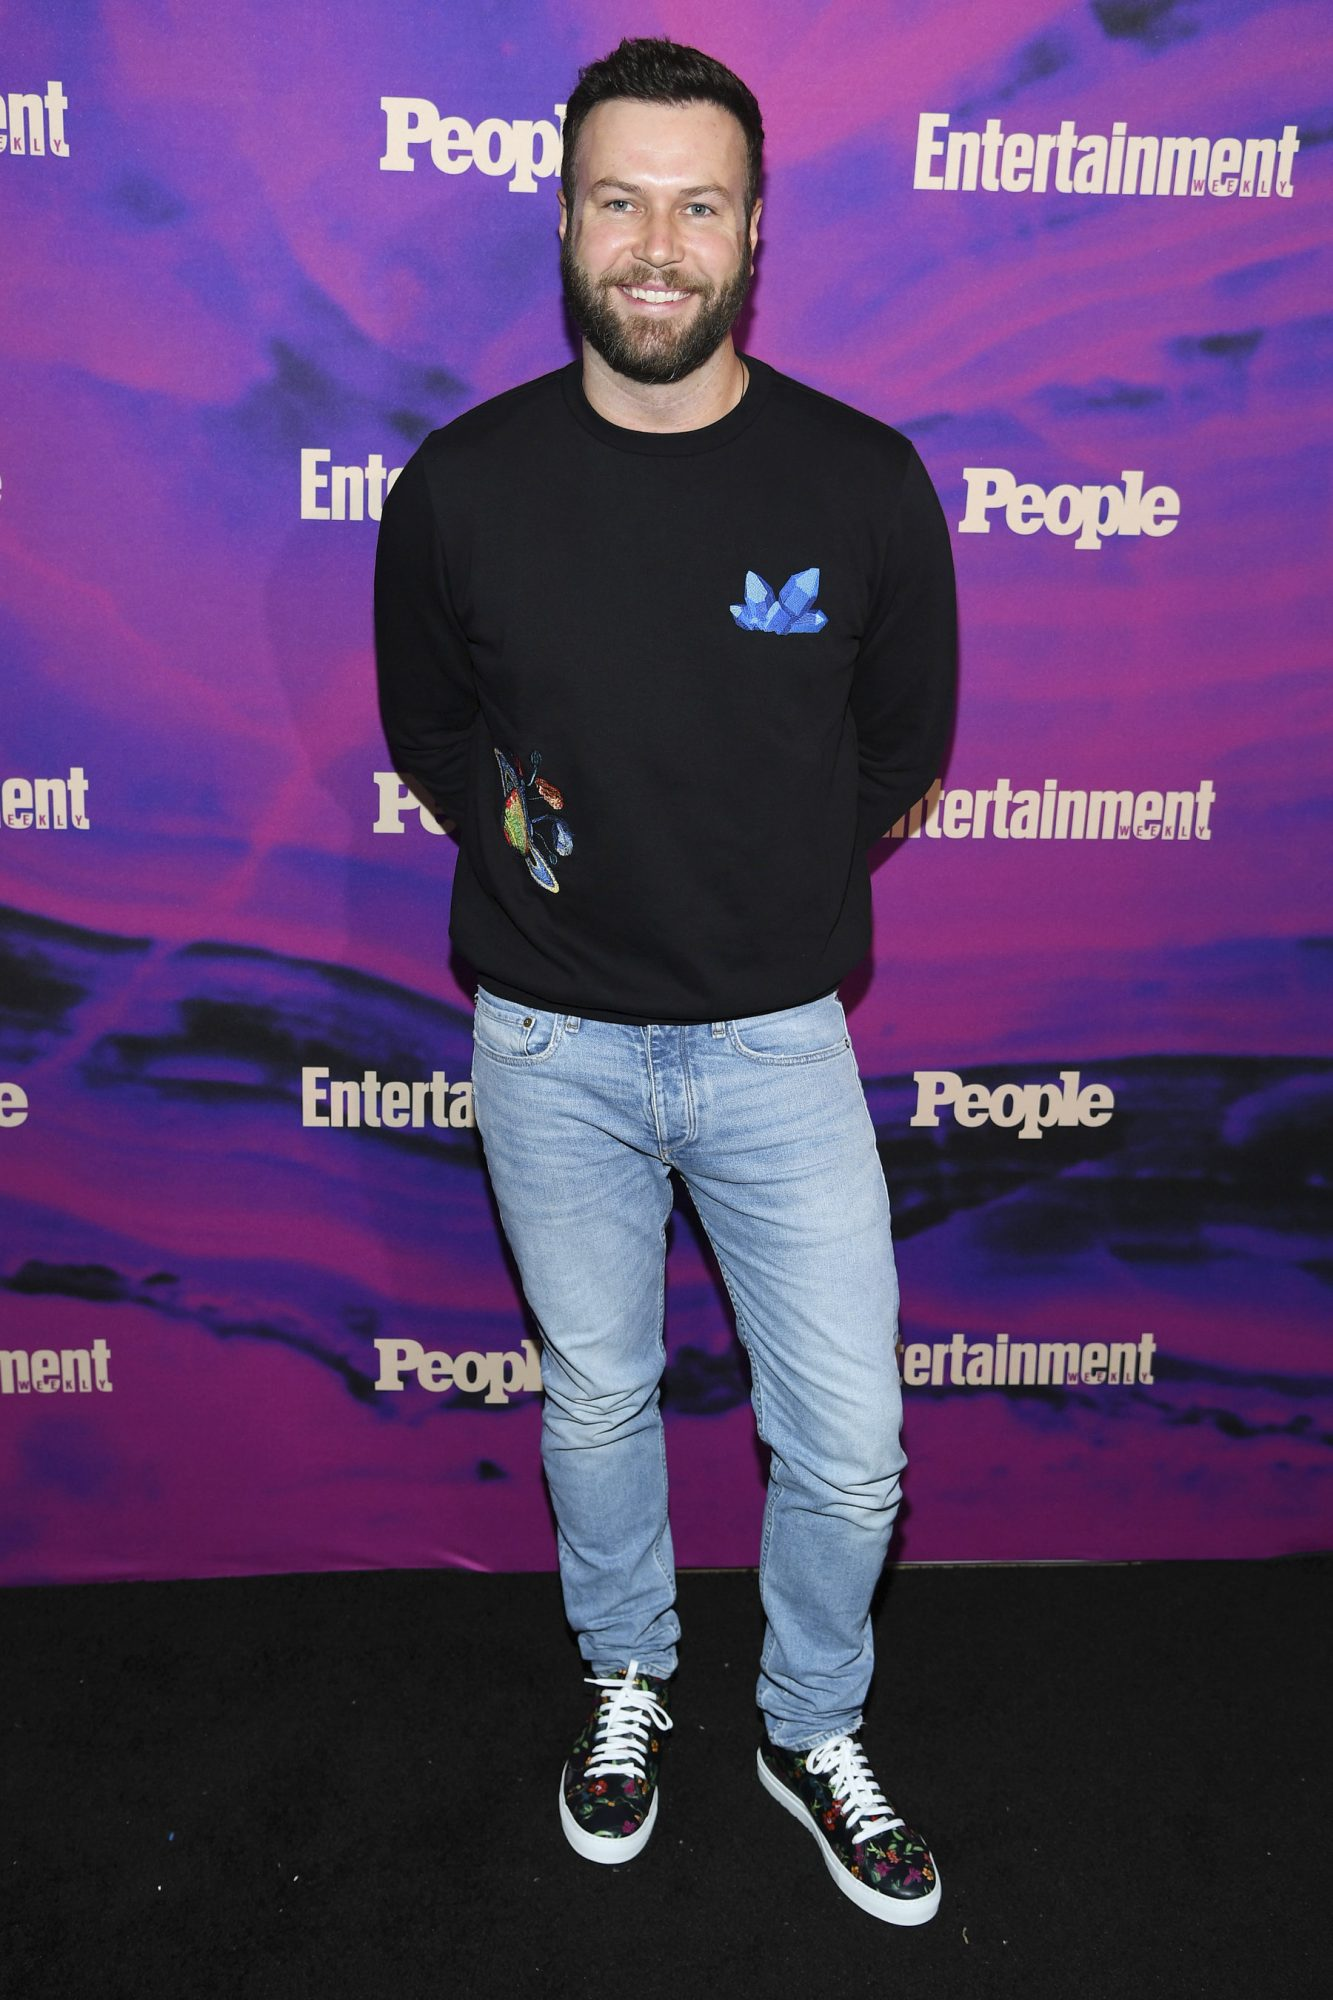 NEW YORK, NEW YORK - MAY 13: Taran Killam of Single Parents attends the Entertainment Weekly & PEOPLE New York Upfronts Party on May 13, 2019 in New York City. (Photo by Dimitrios Kambouris/Getty Images for Entertainment Weekly & PEOPLE)